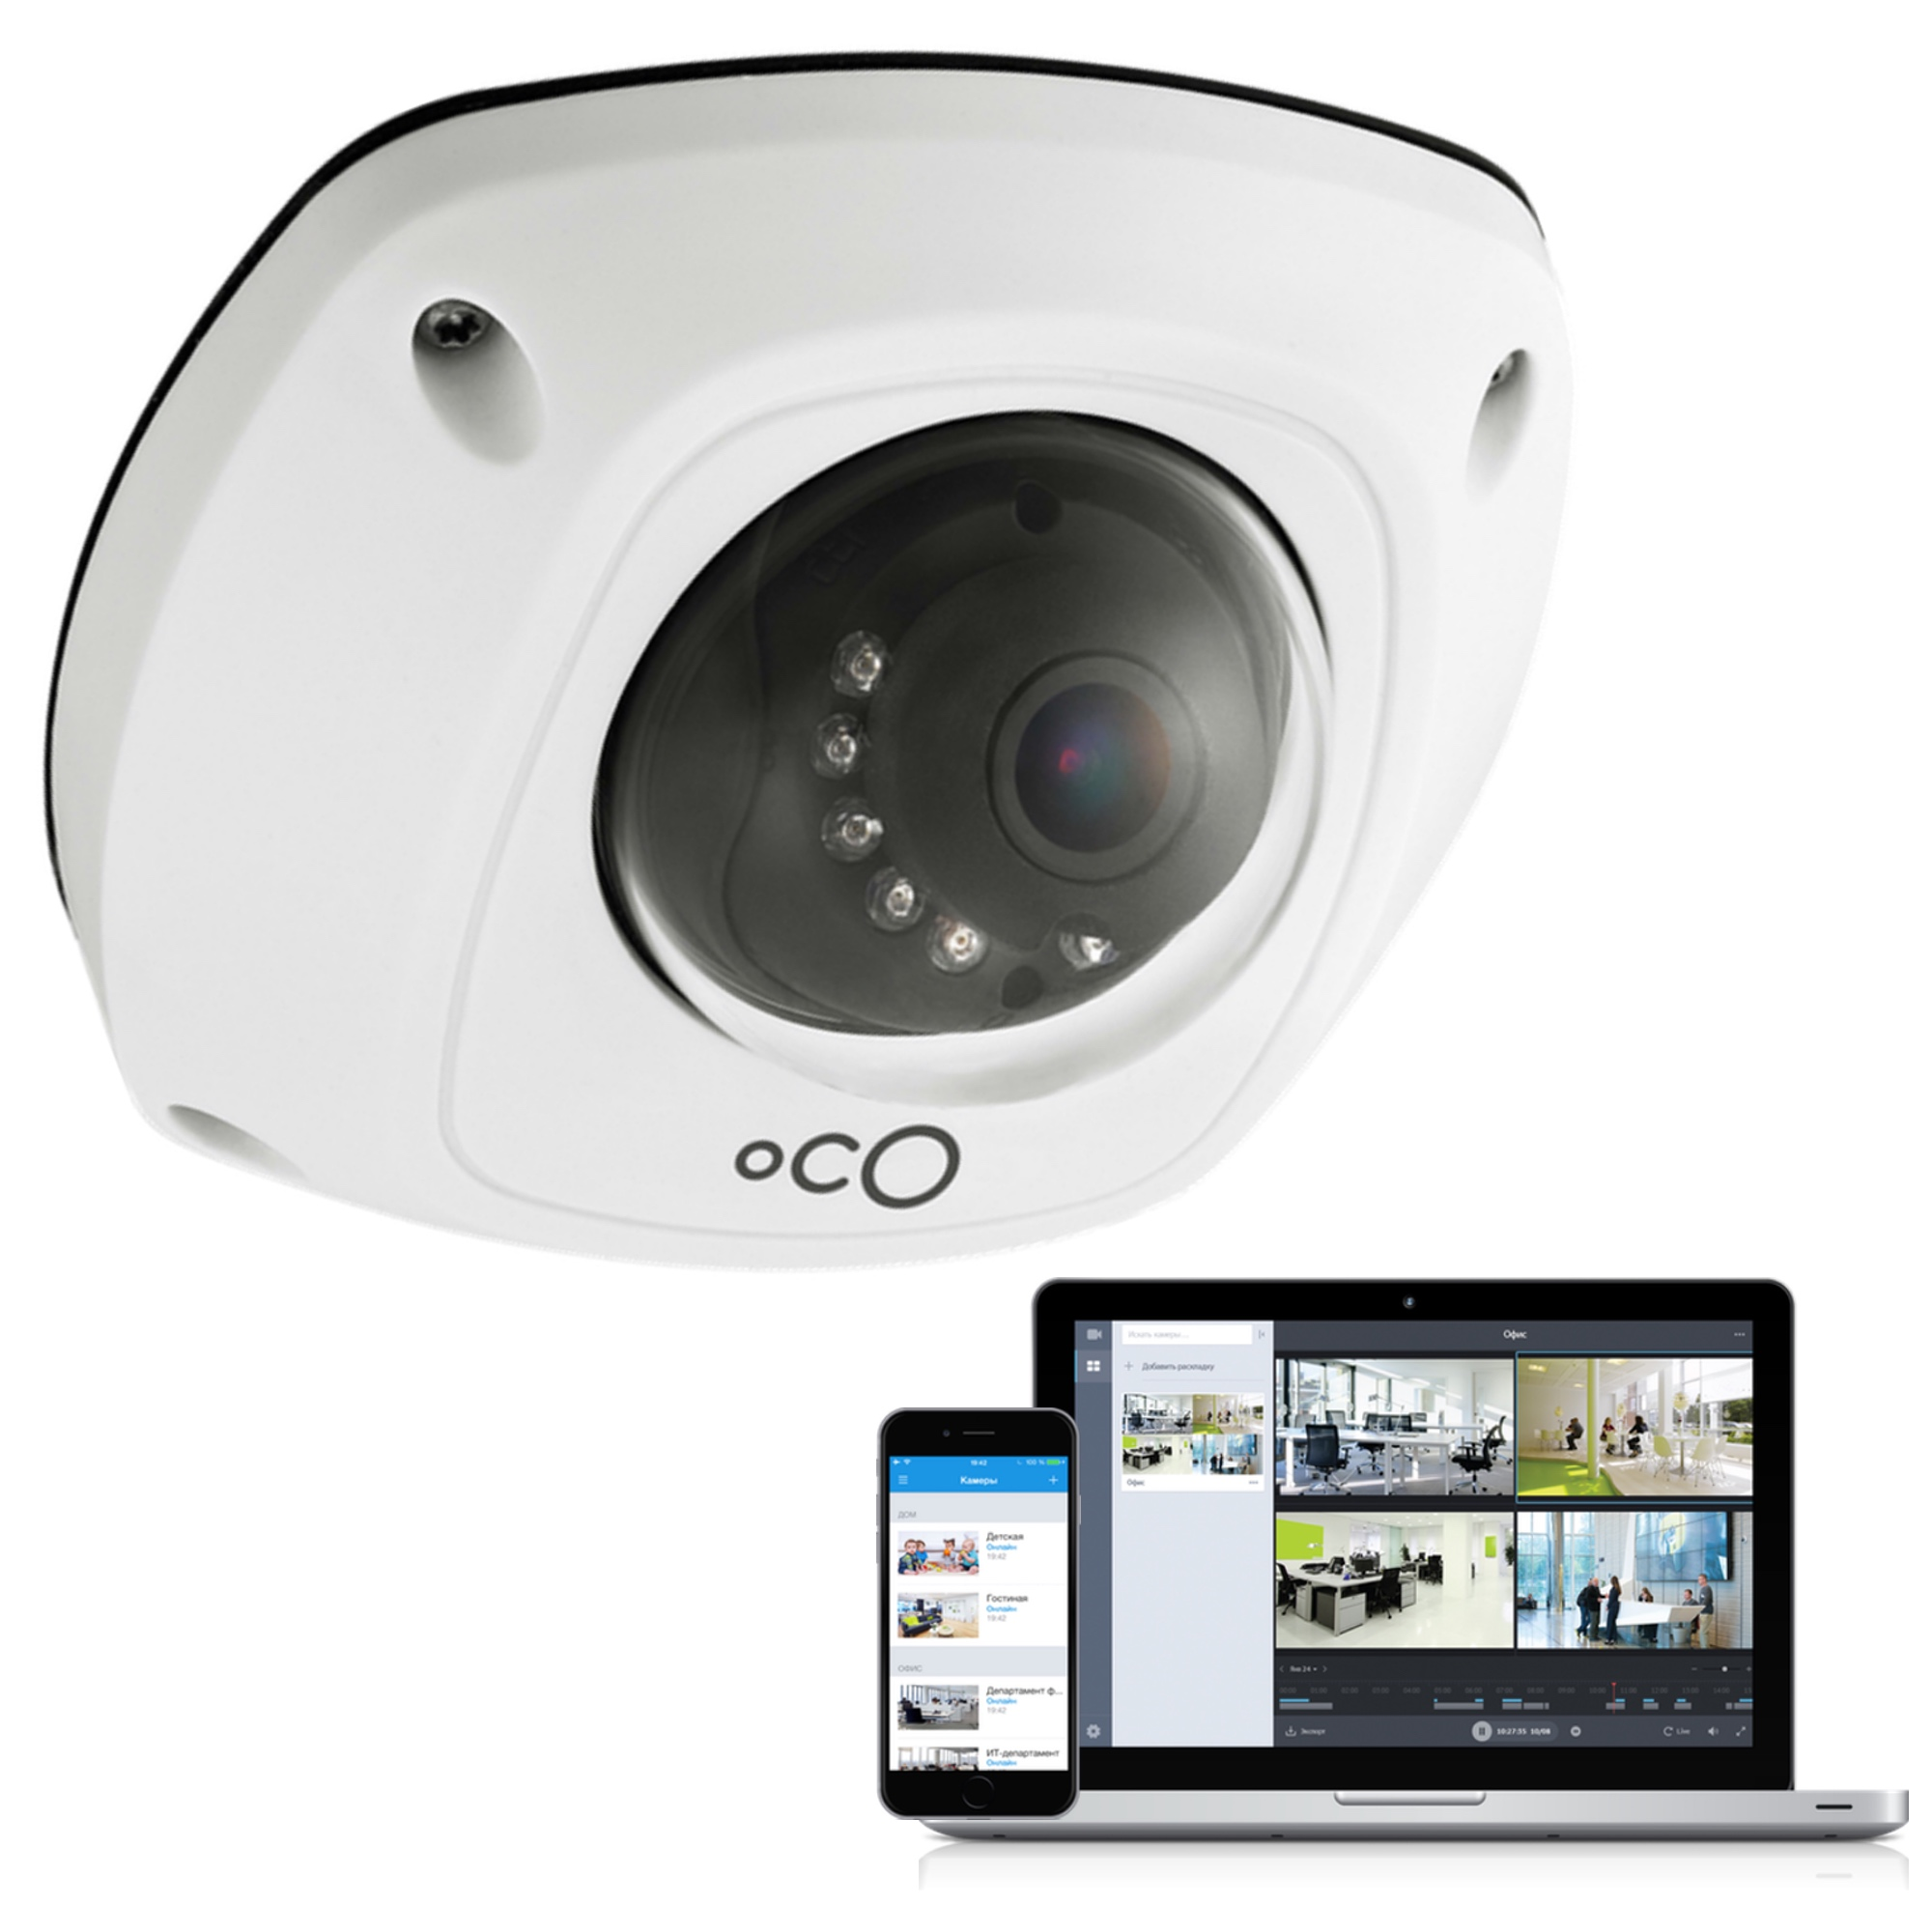 Oco Pro Dome Outdoor / Indoor 1080p Cloud Surveillance and Security Camera with Remote Viewing